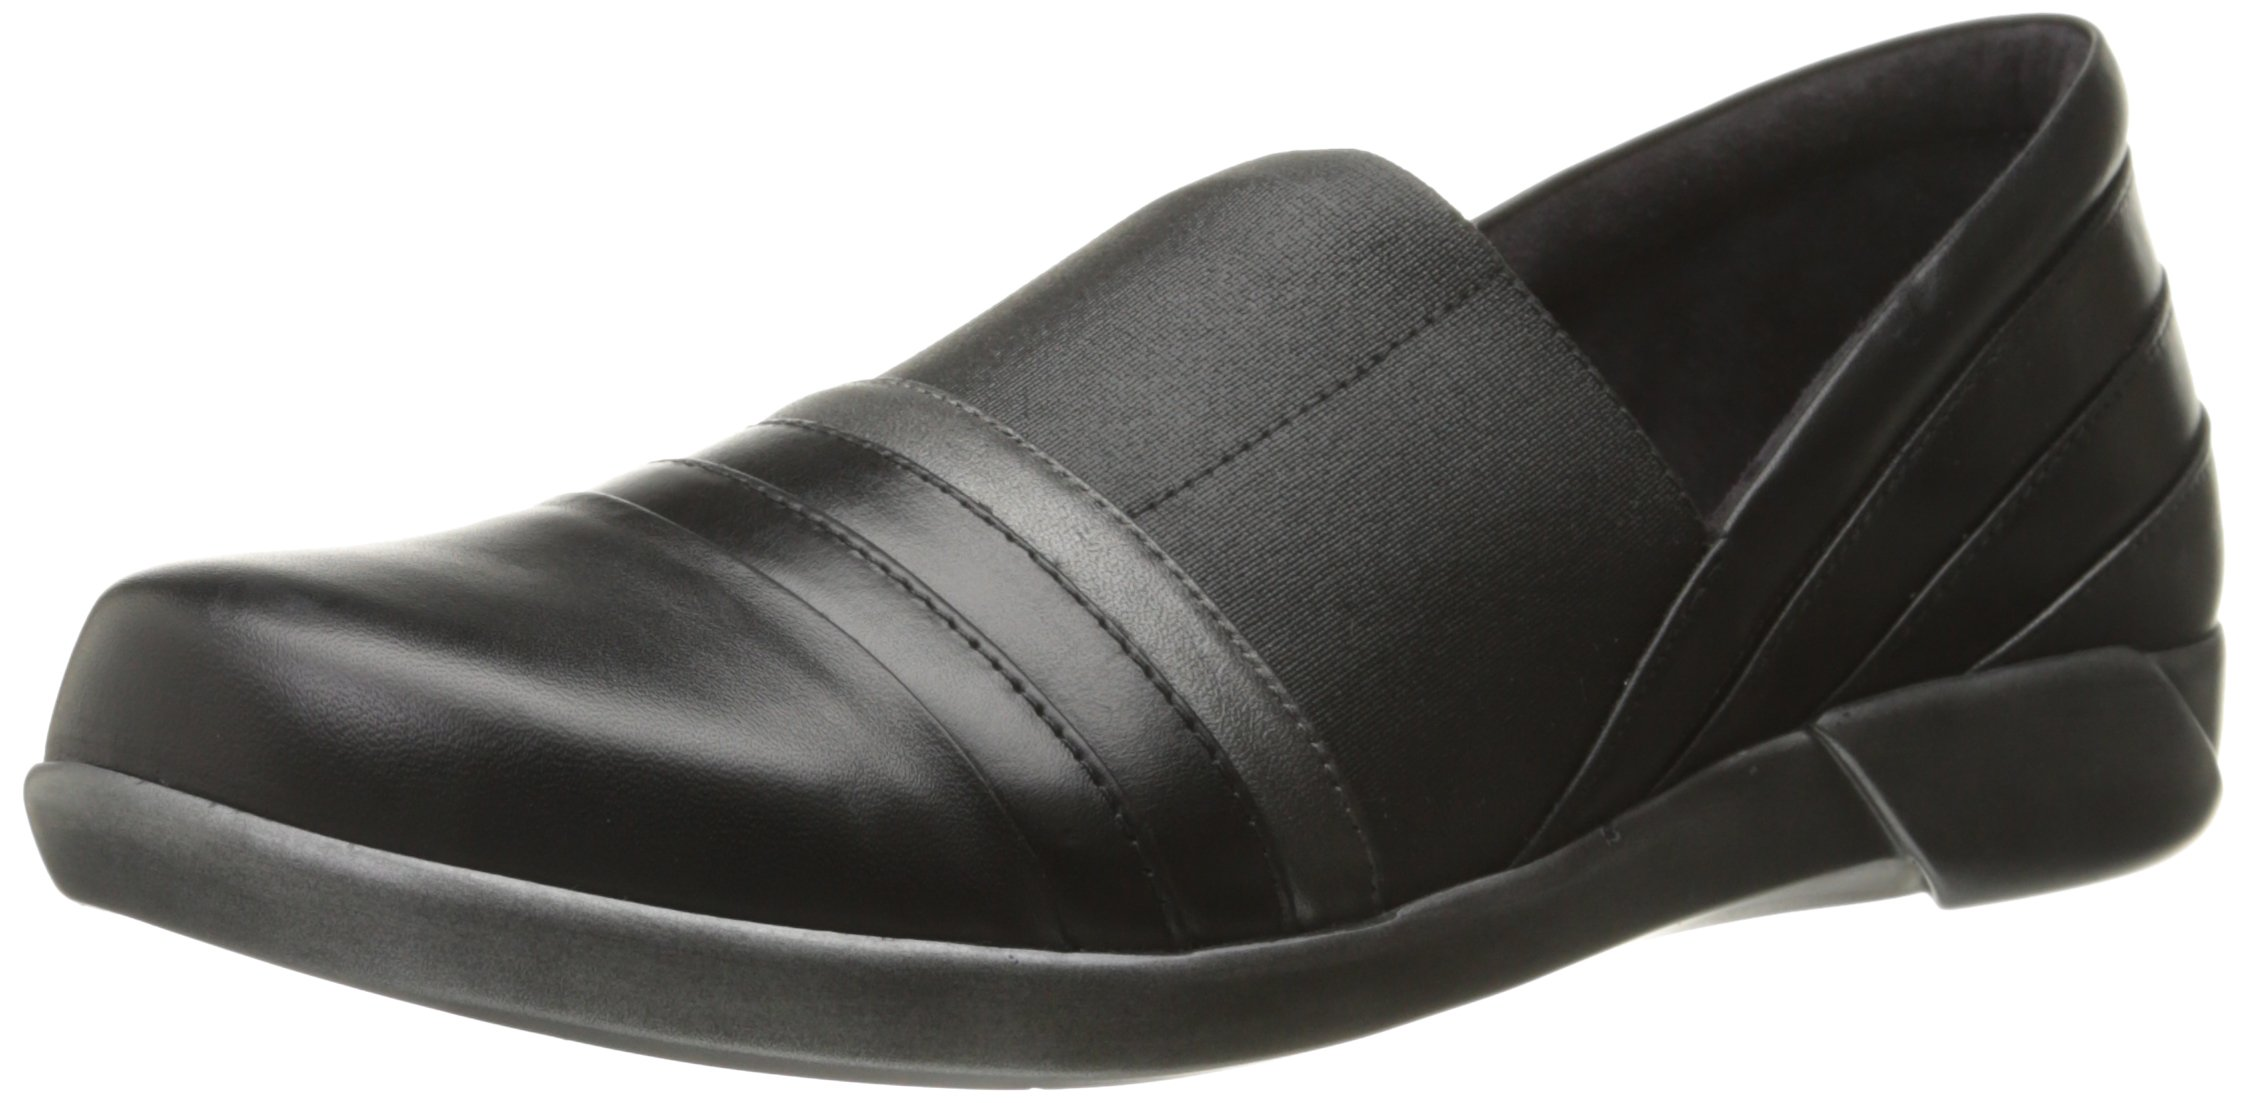 Naot Women's Nina Flat, Black Raven Leather/Black Madras Leather/Metallic Road Leather, 41 EU/9.5-10 M US